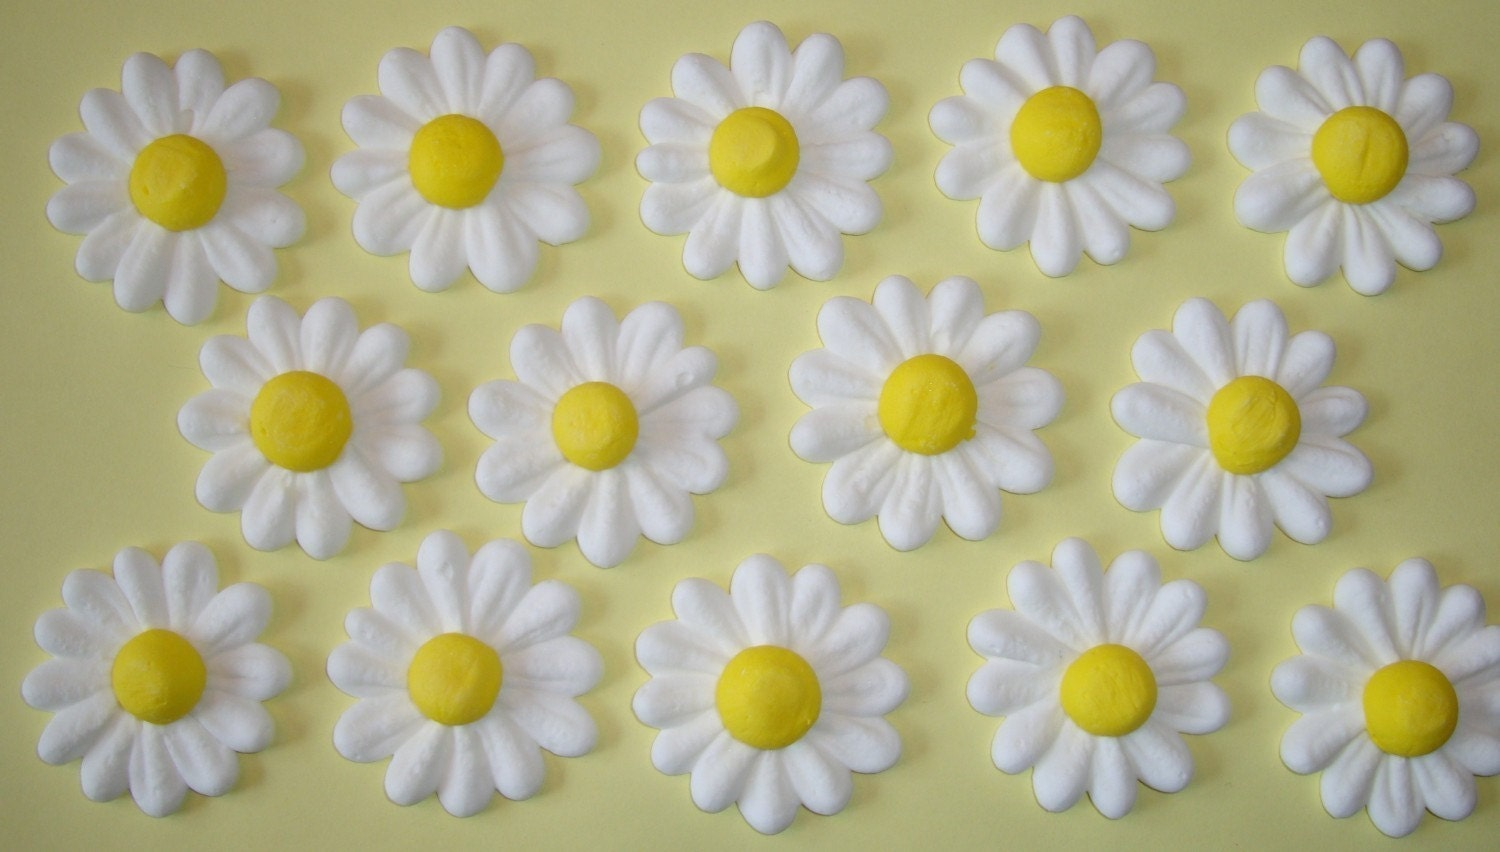 Cake Decorating How To Make Daisies : LOT of 100 Royal Icing daisies for Cake Decorating